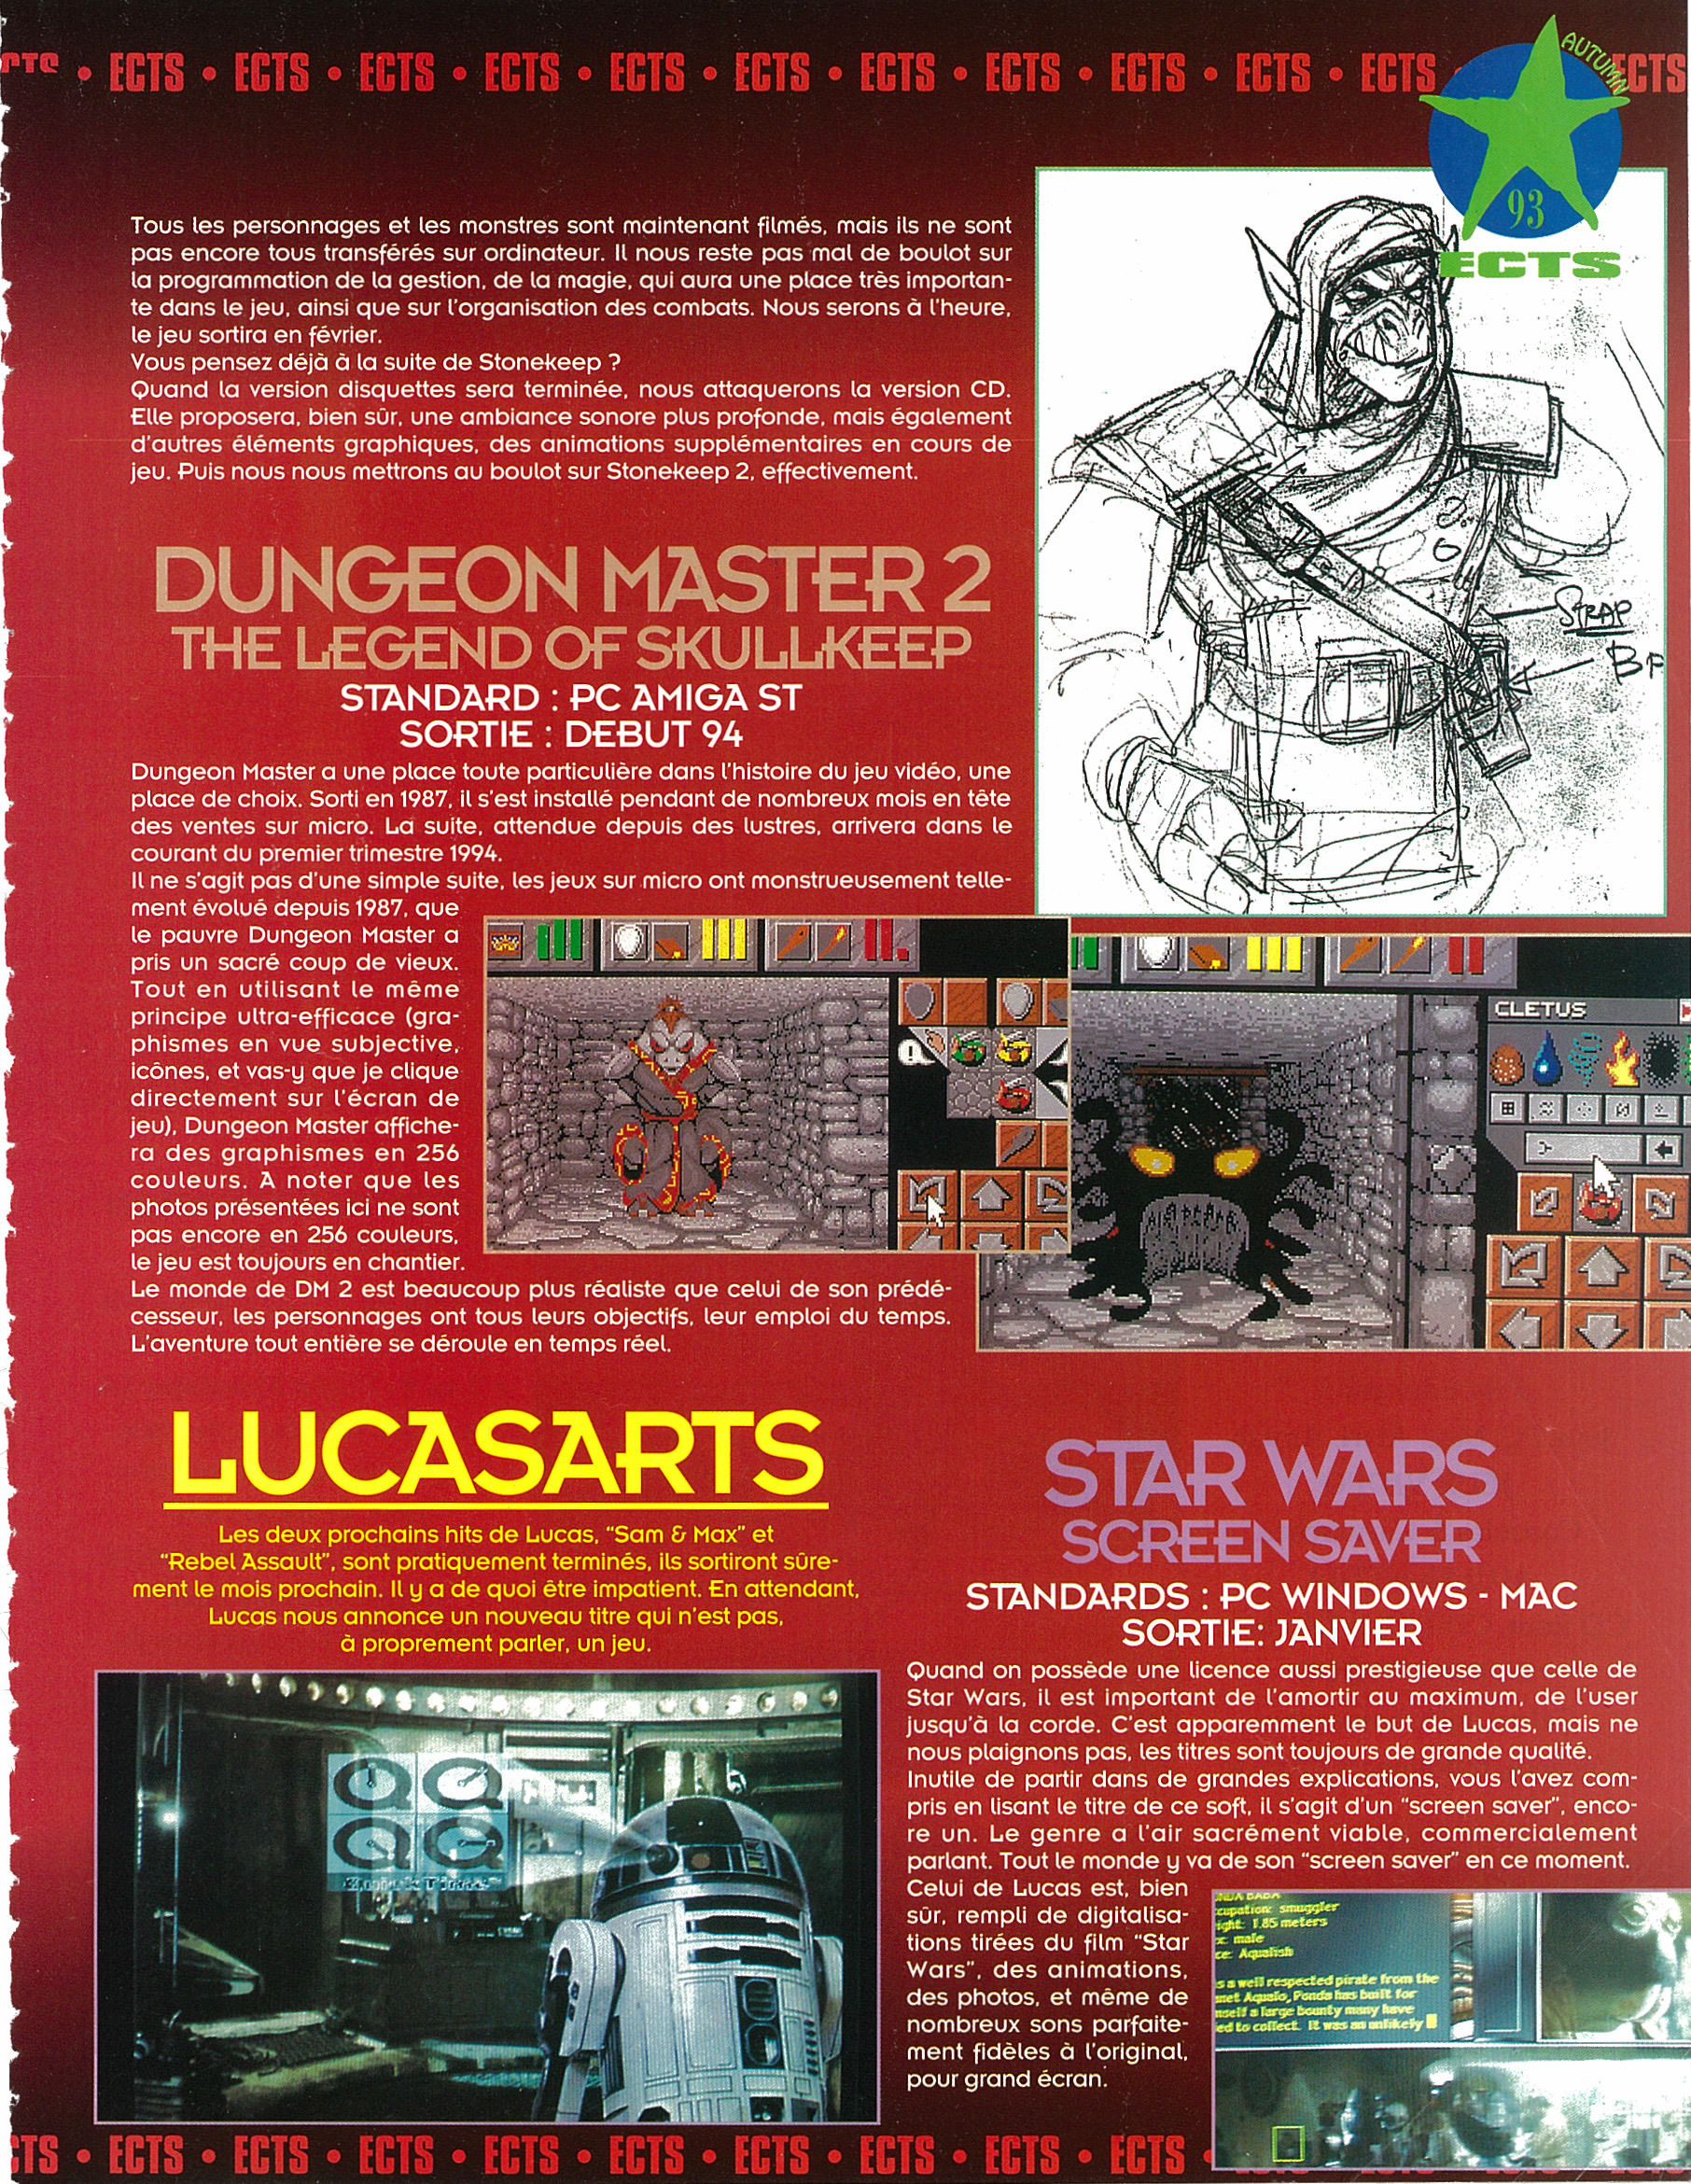 Dungeon Master II for Amiga-PC Preview published in French magazine 'Joystick', Issue #42 October 1993, Page 29